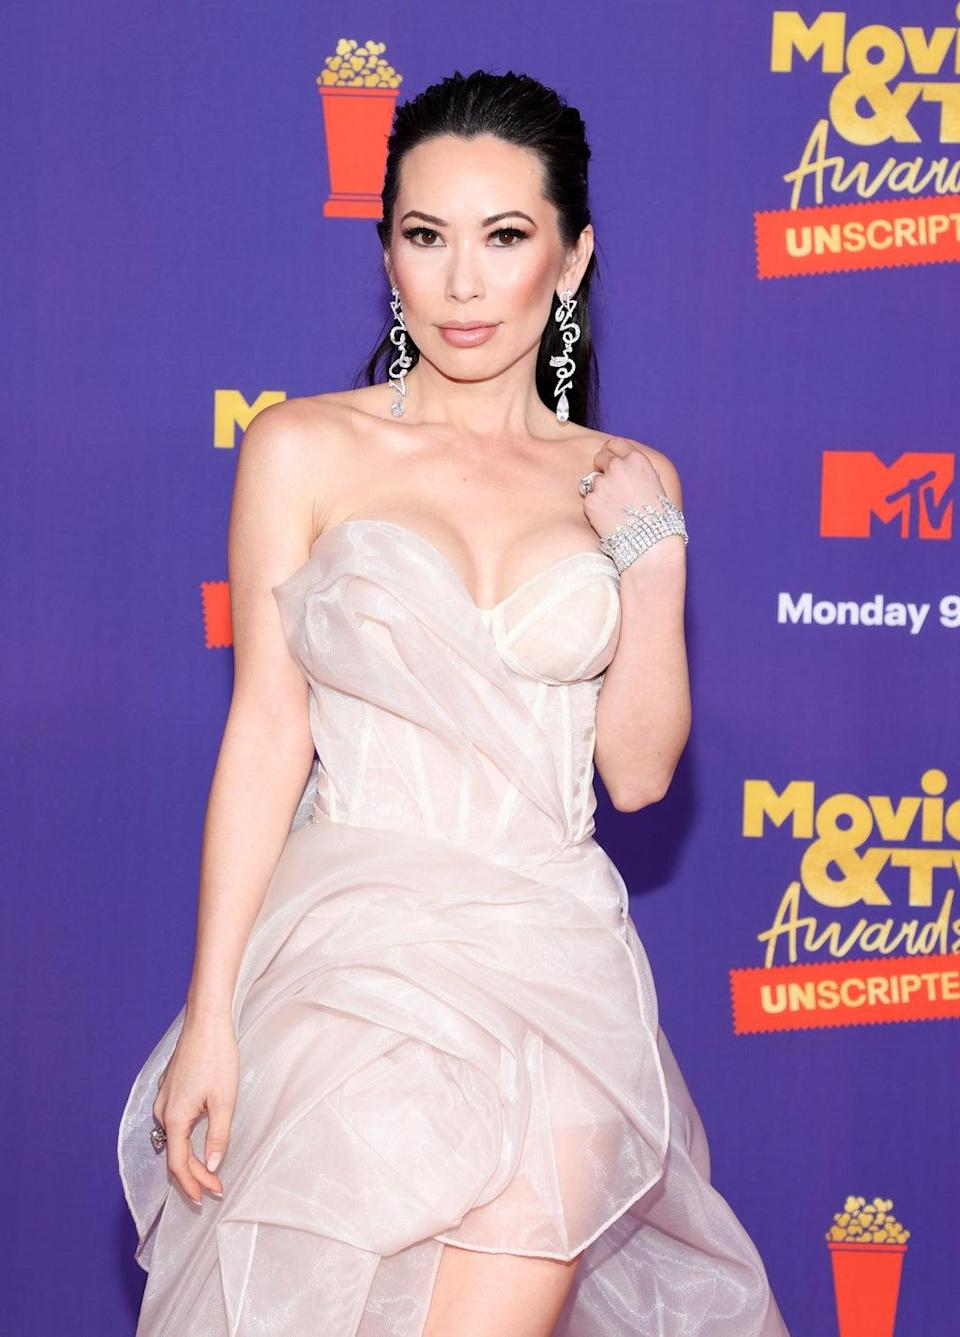 Christine Chiu attends the 2021 MTV Movie & TV Awards on 17 May 2021 in Los Angeles (Amy Sussman/Getty Images)